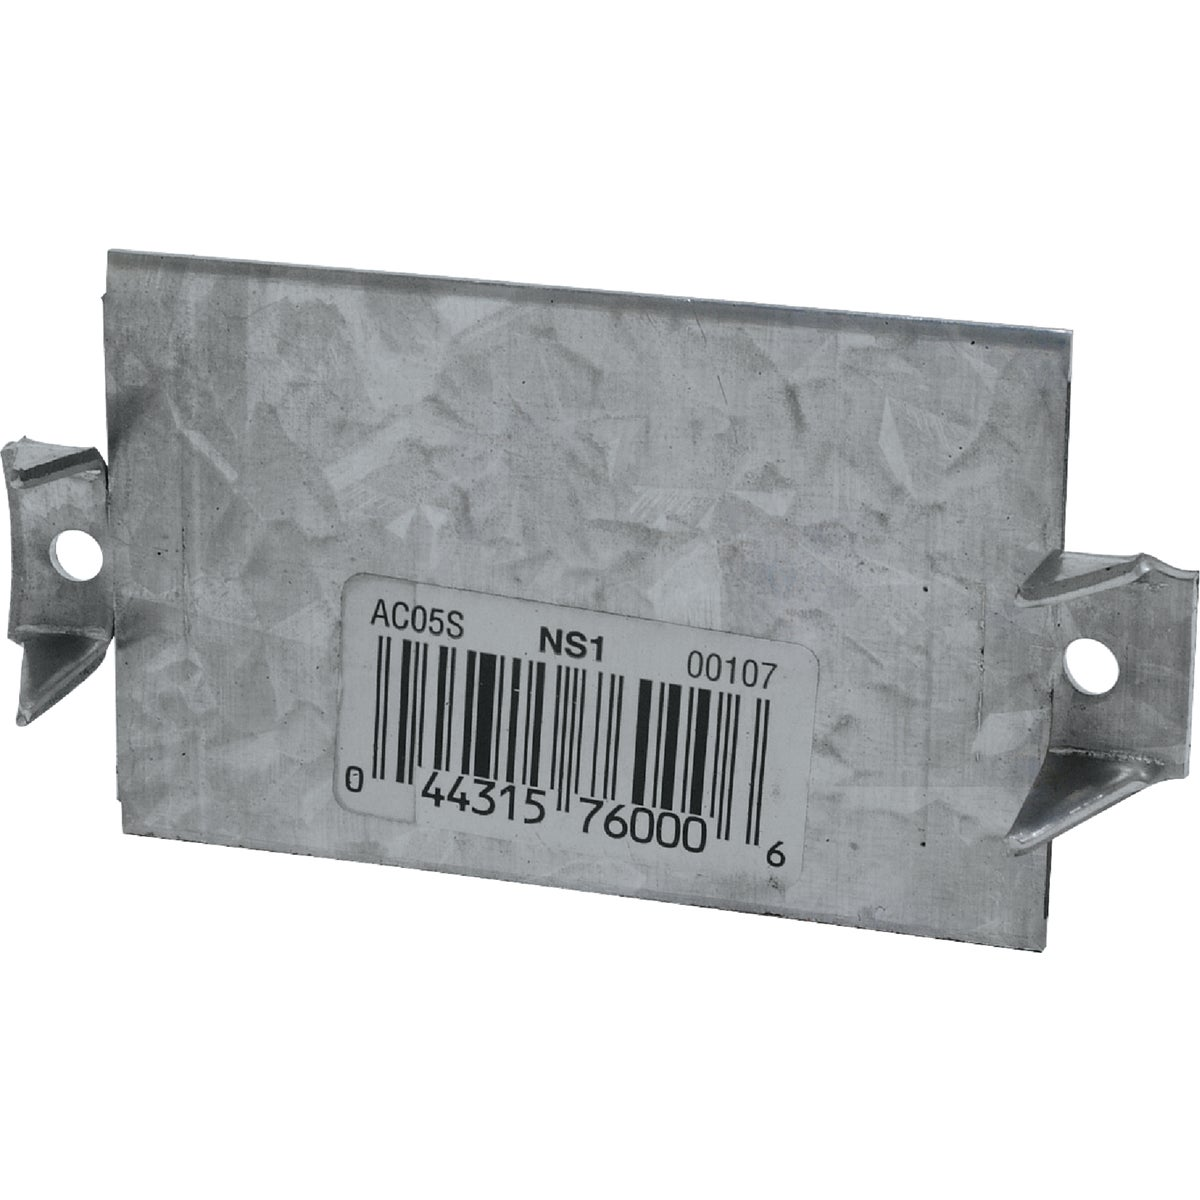 Simpson Strong-Tie 1-1/2X3 NAIL STOP NS1